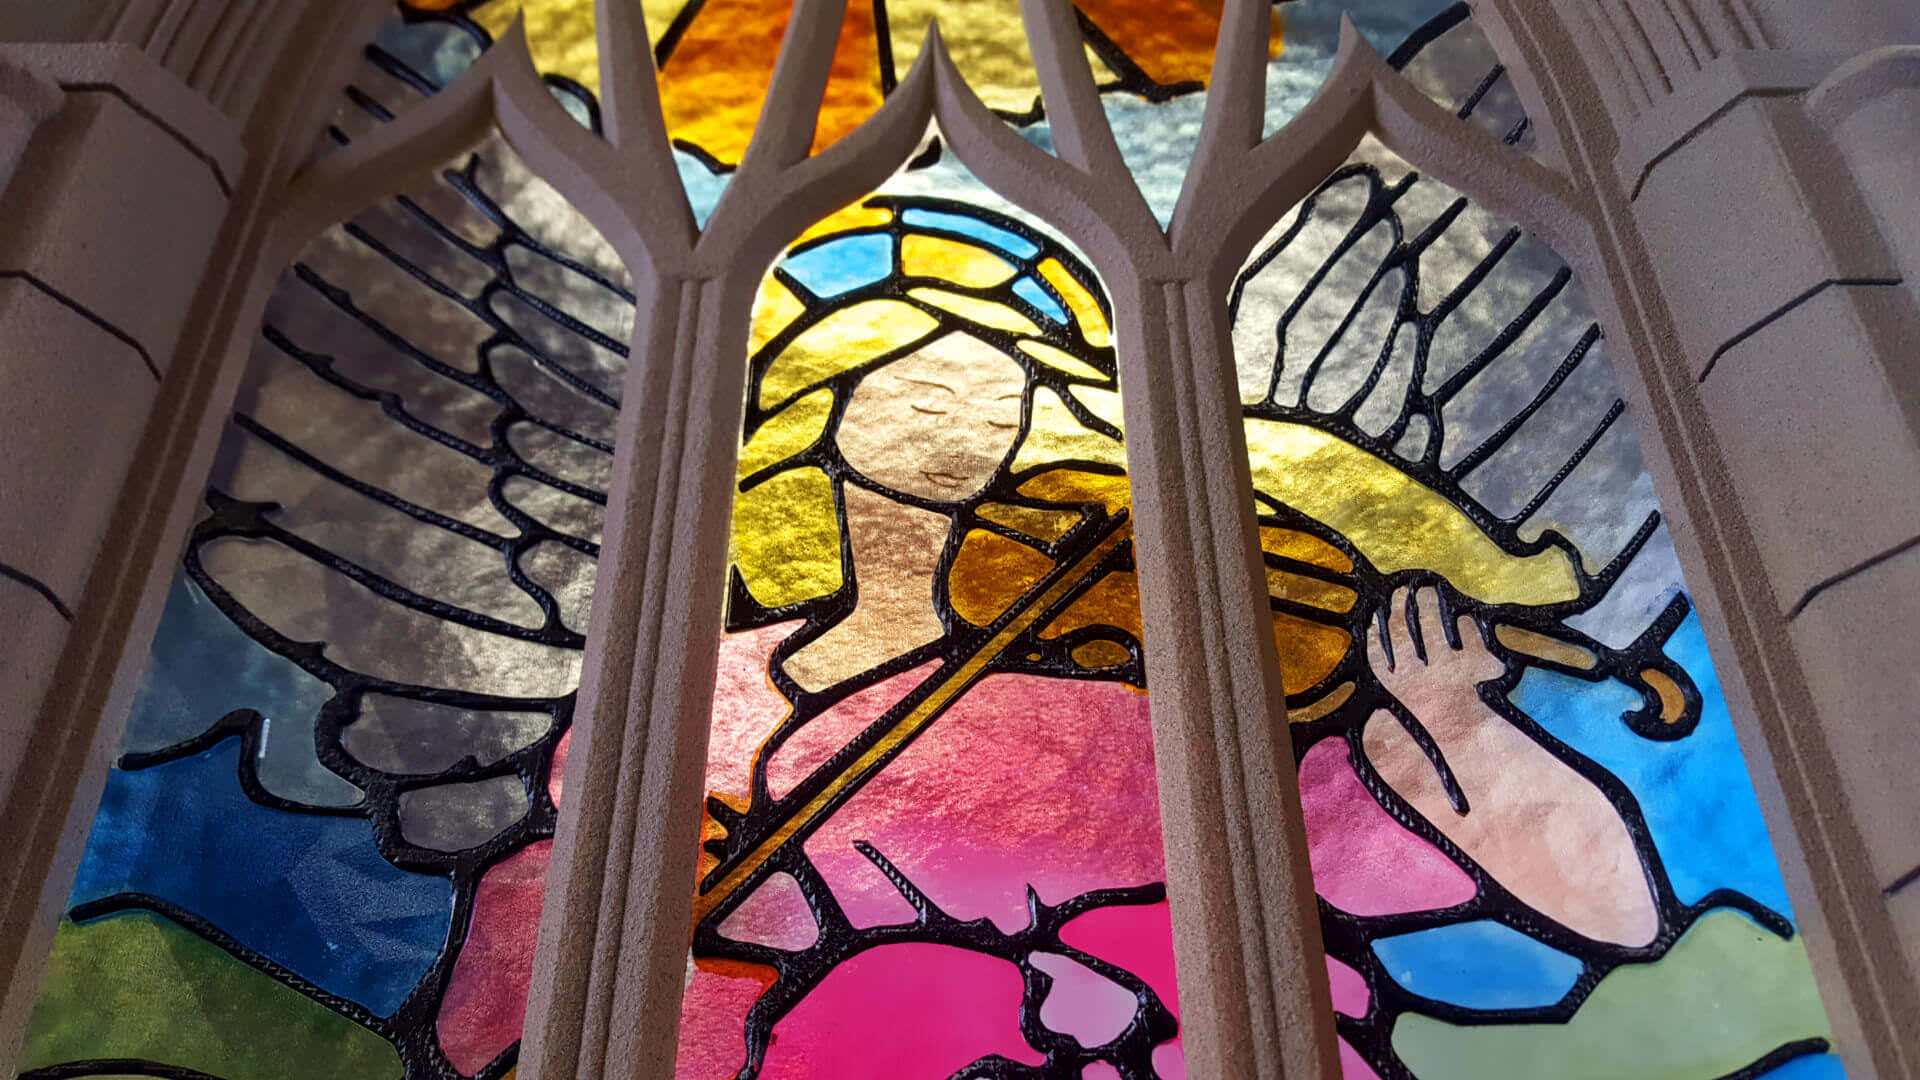 Stunning Stained Glass Window is 3D Printed from Plastic | All3DP